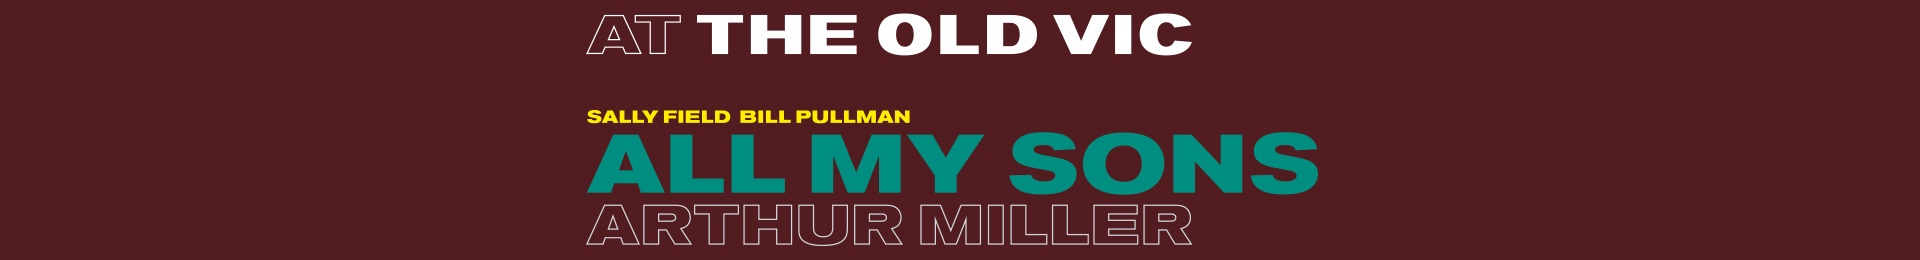 All My Sons banner image